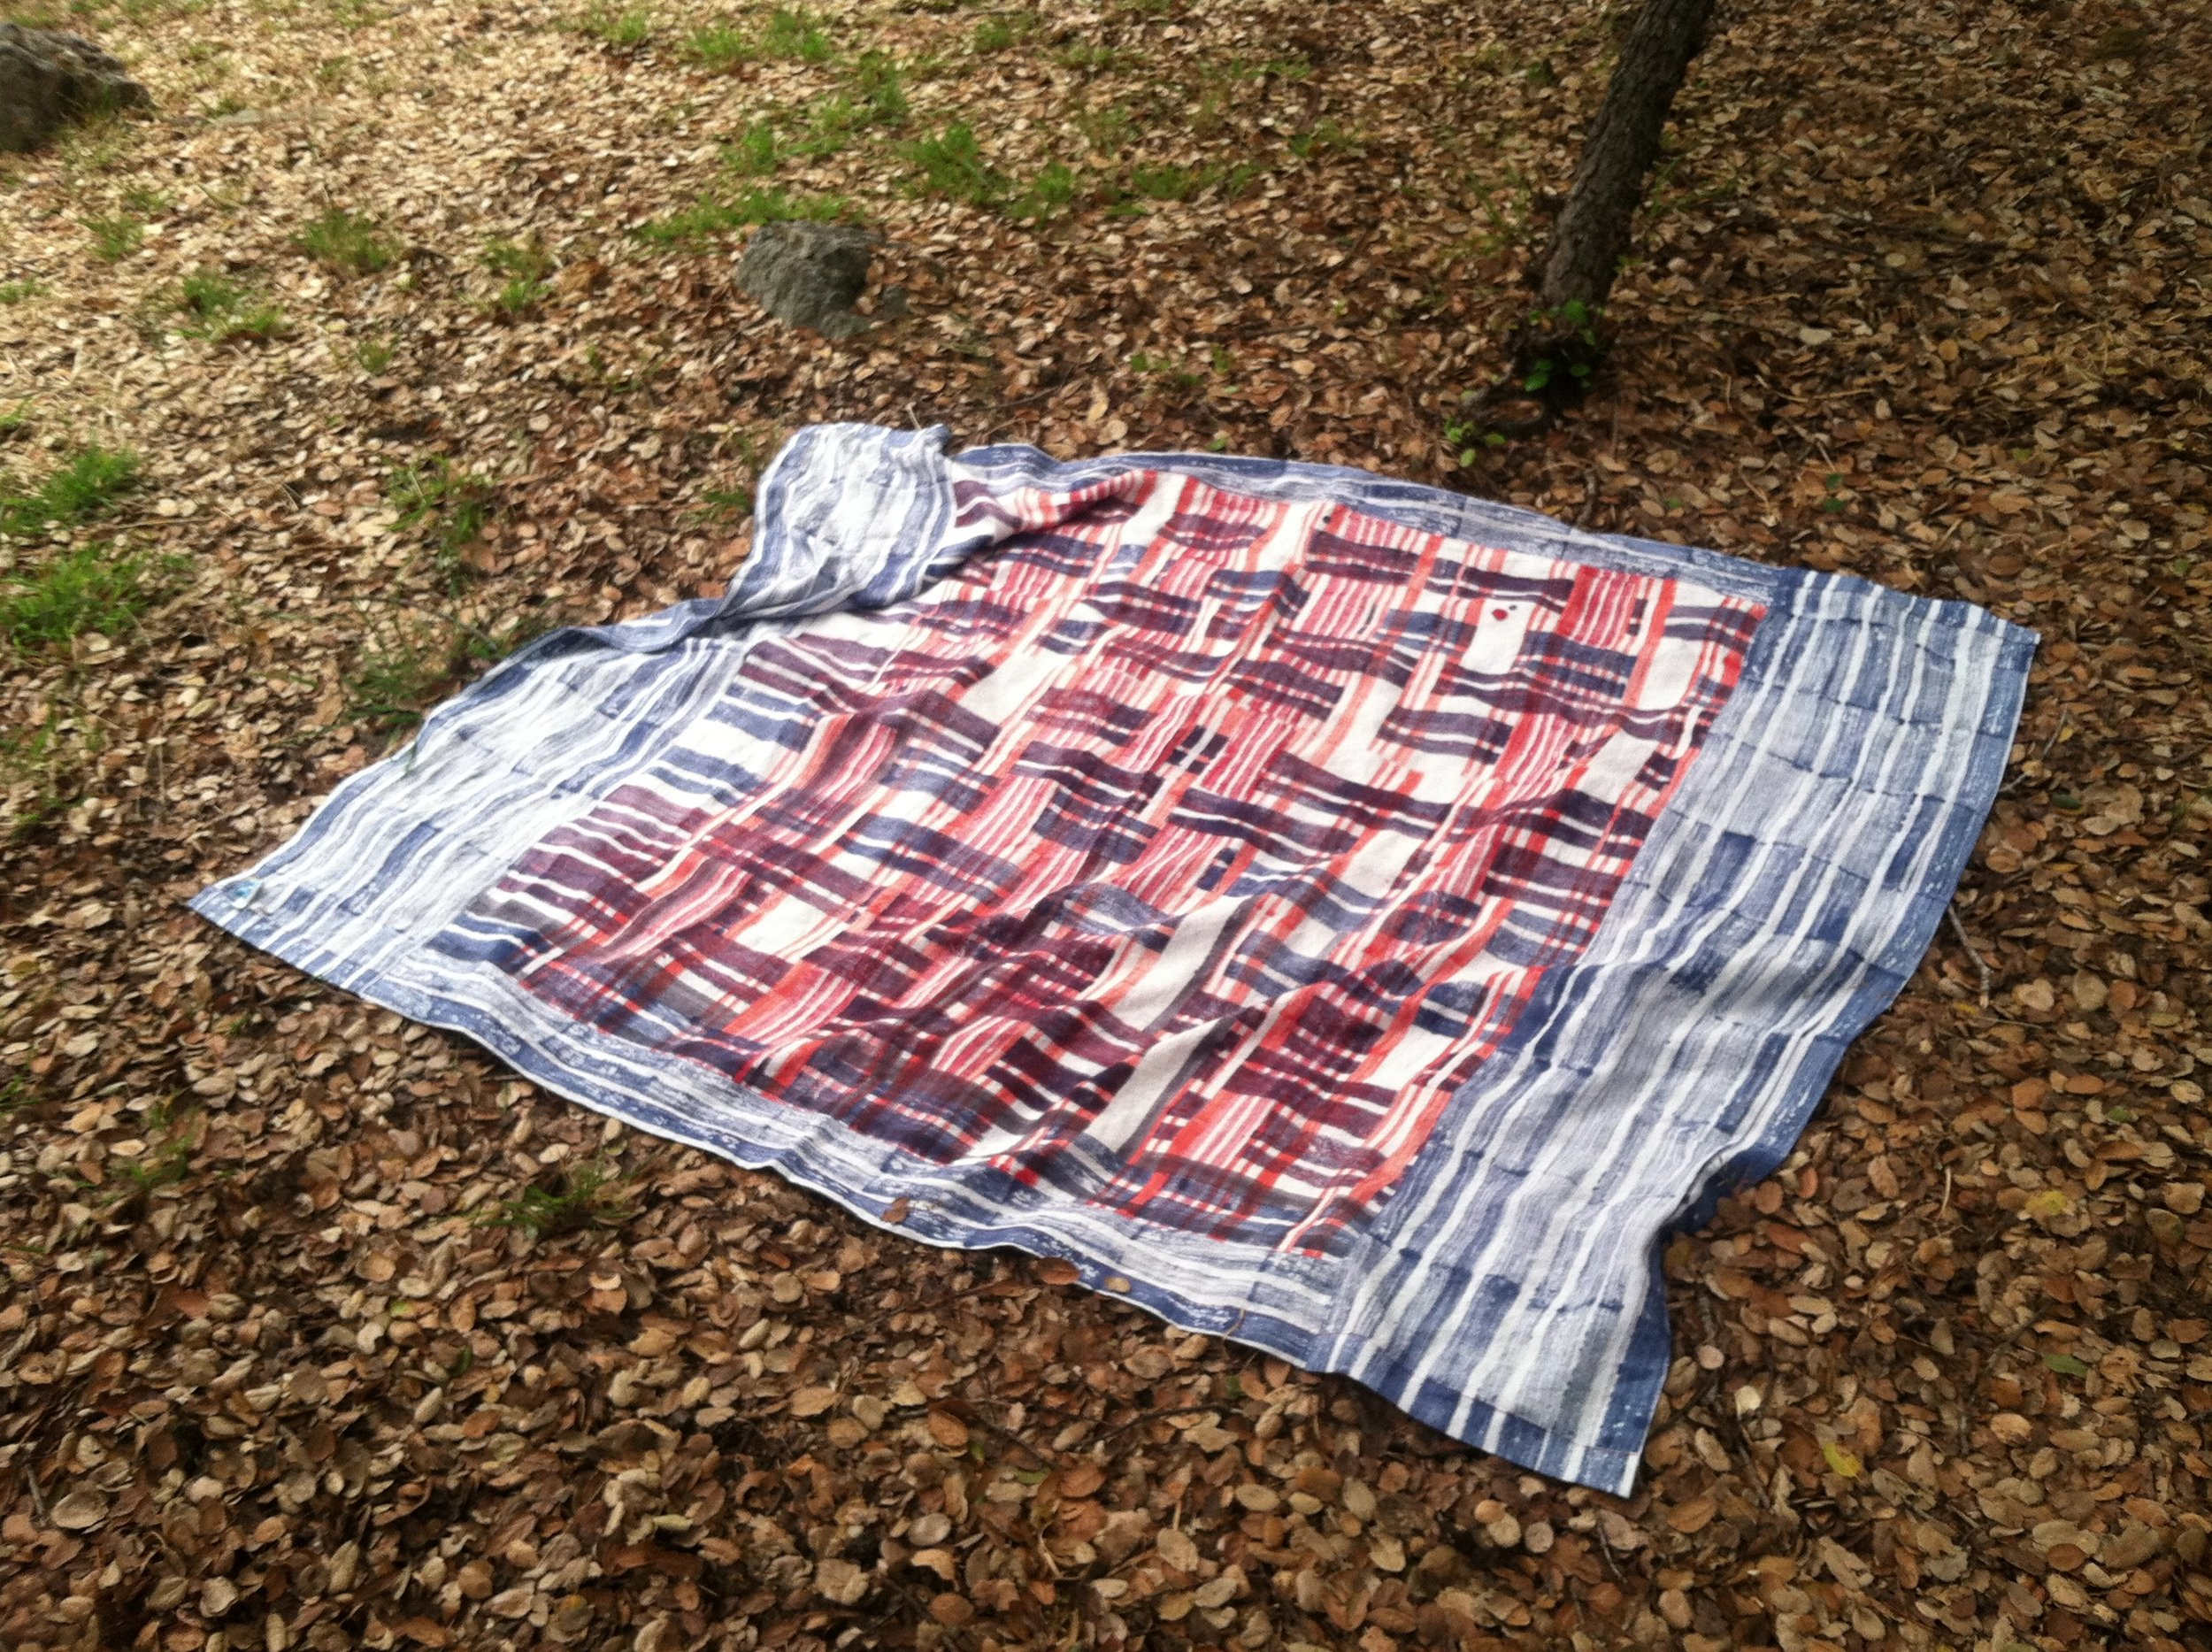 Proto-painting. Tablecloth. 2013  It depends on how you use it. Block print with dye on linen, pieced together borders.